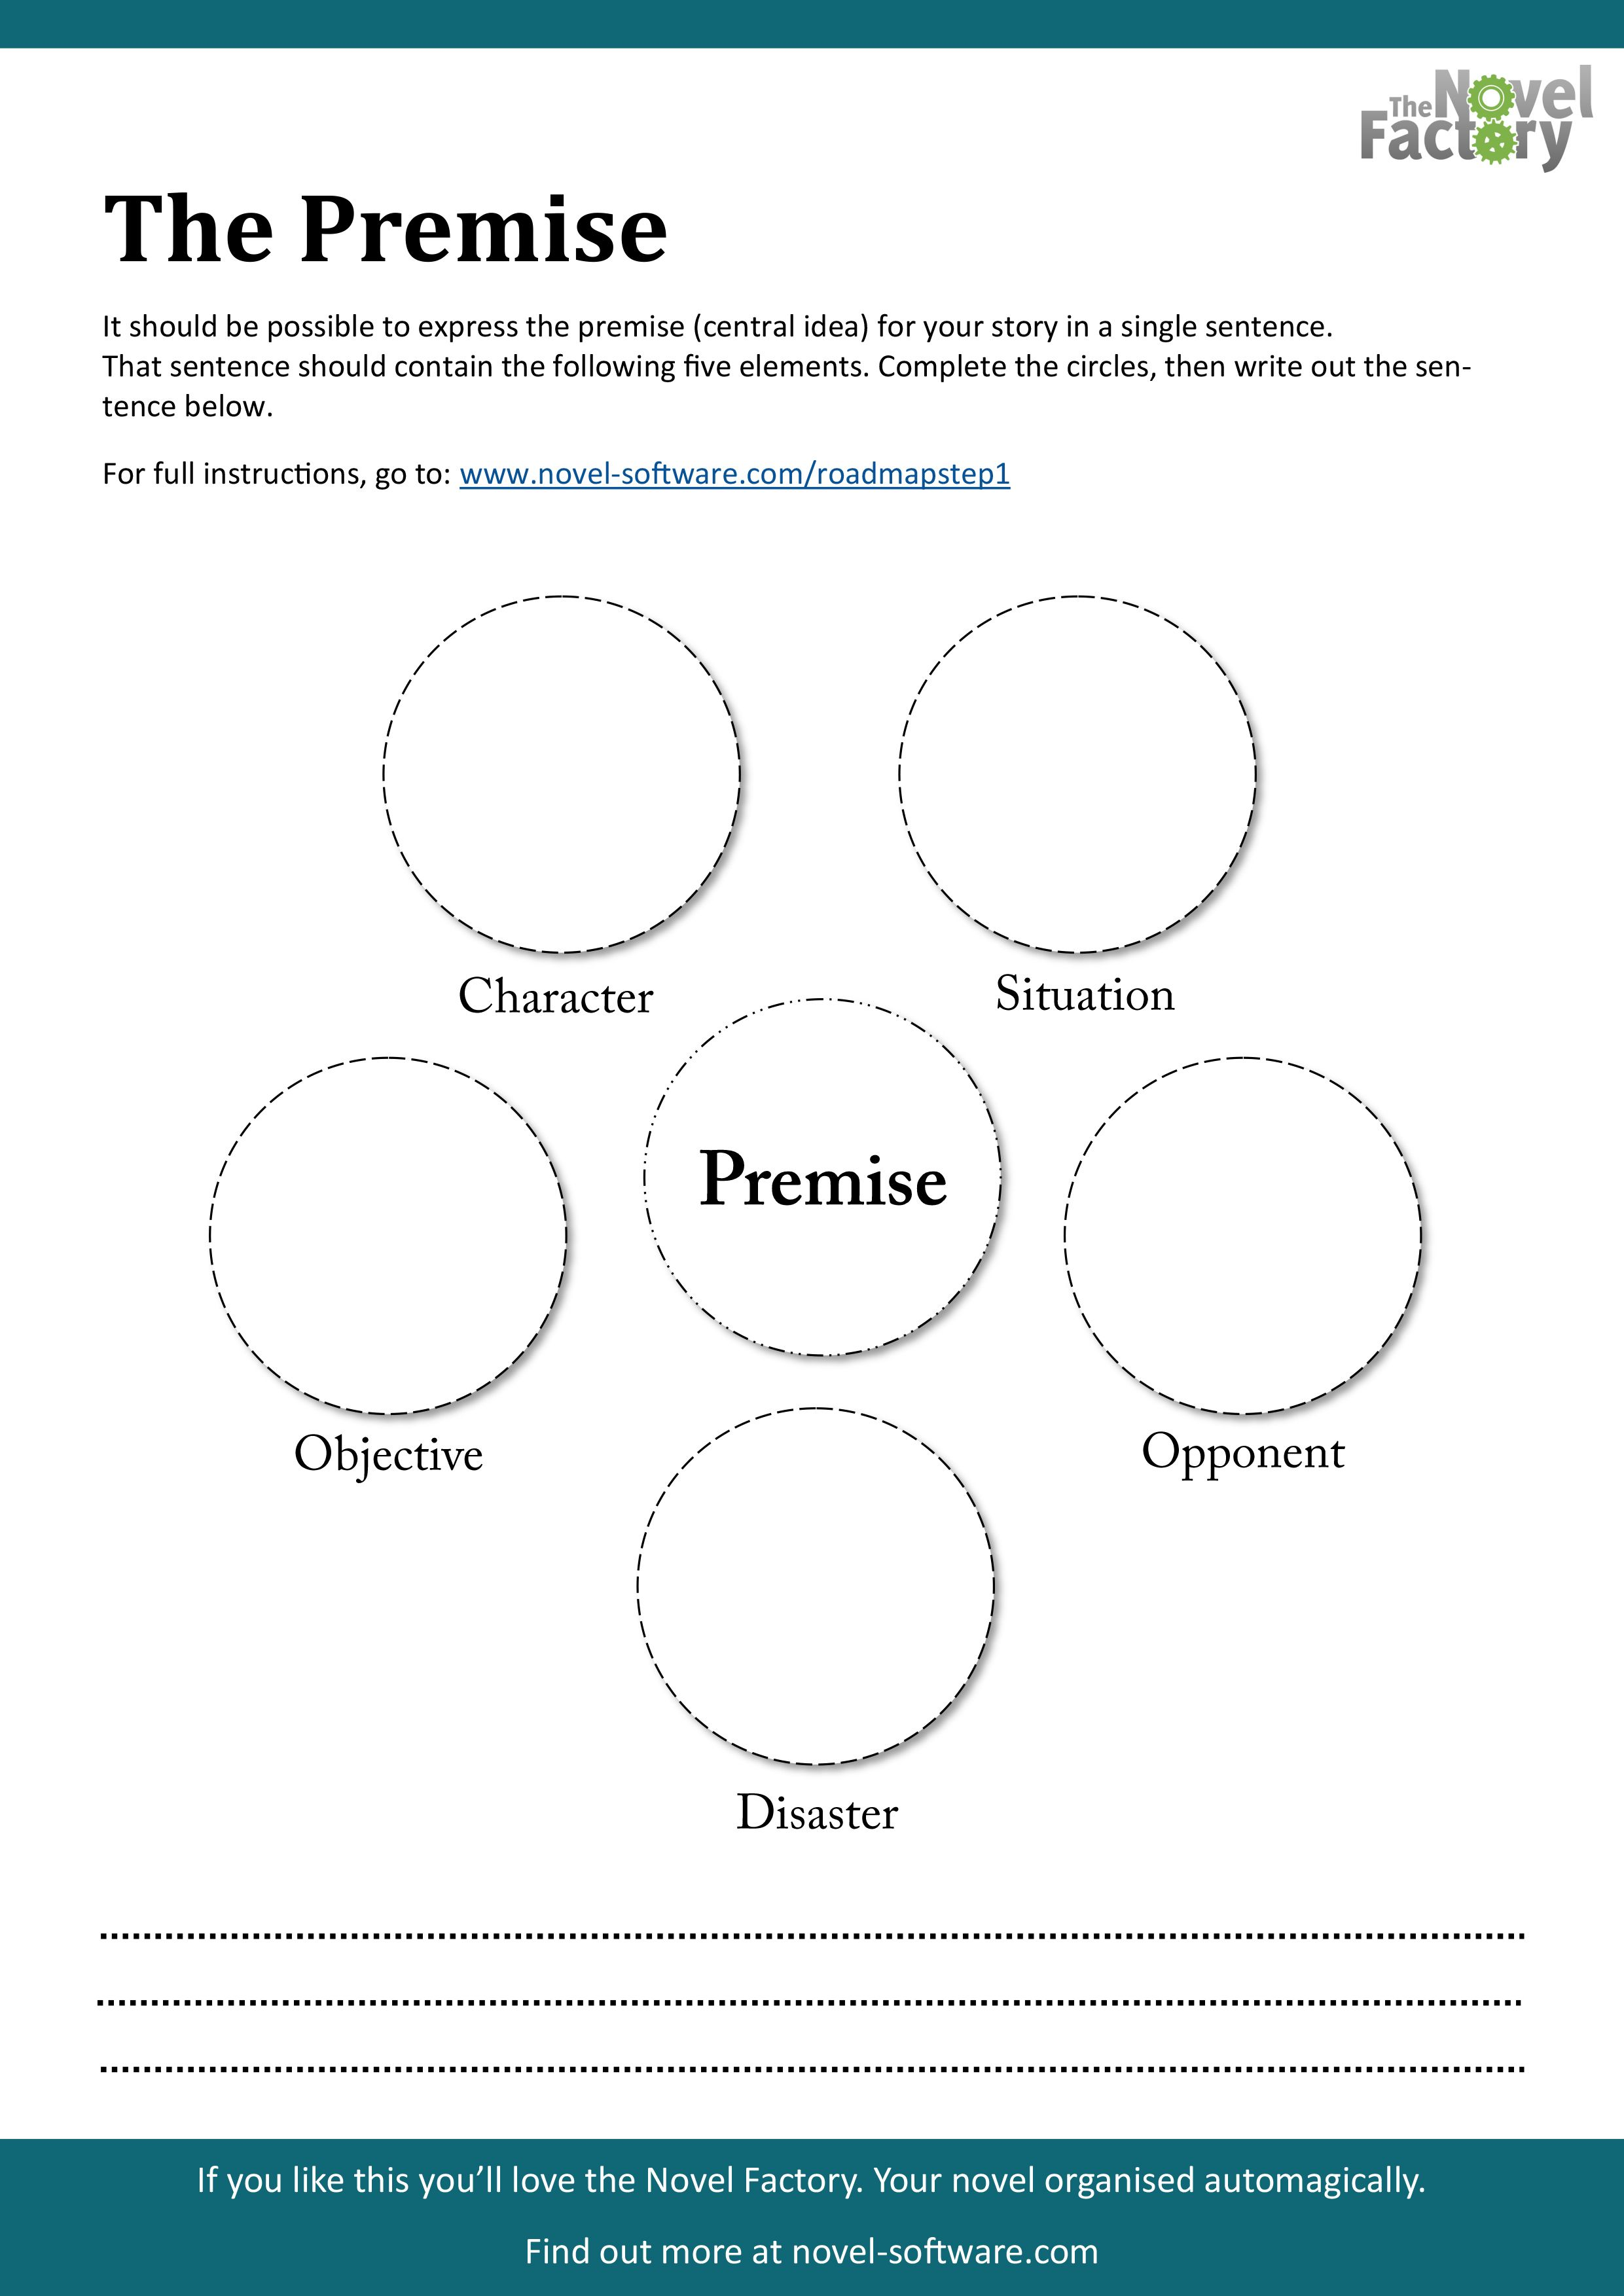 The Premise Free Downloadable Printable Worksheet